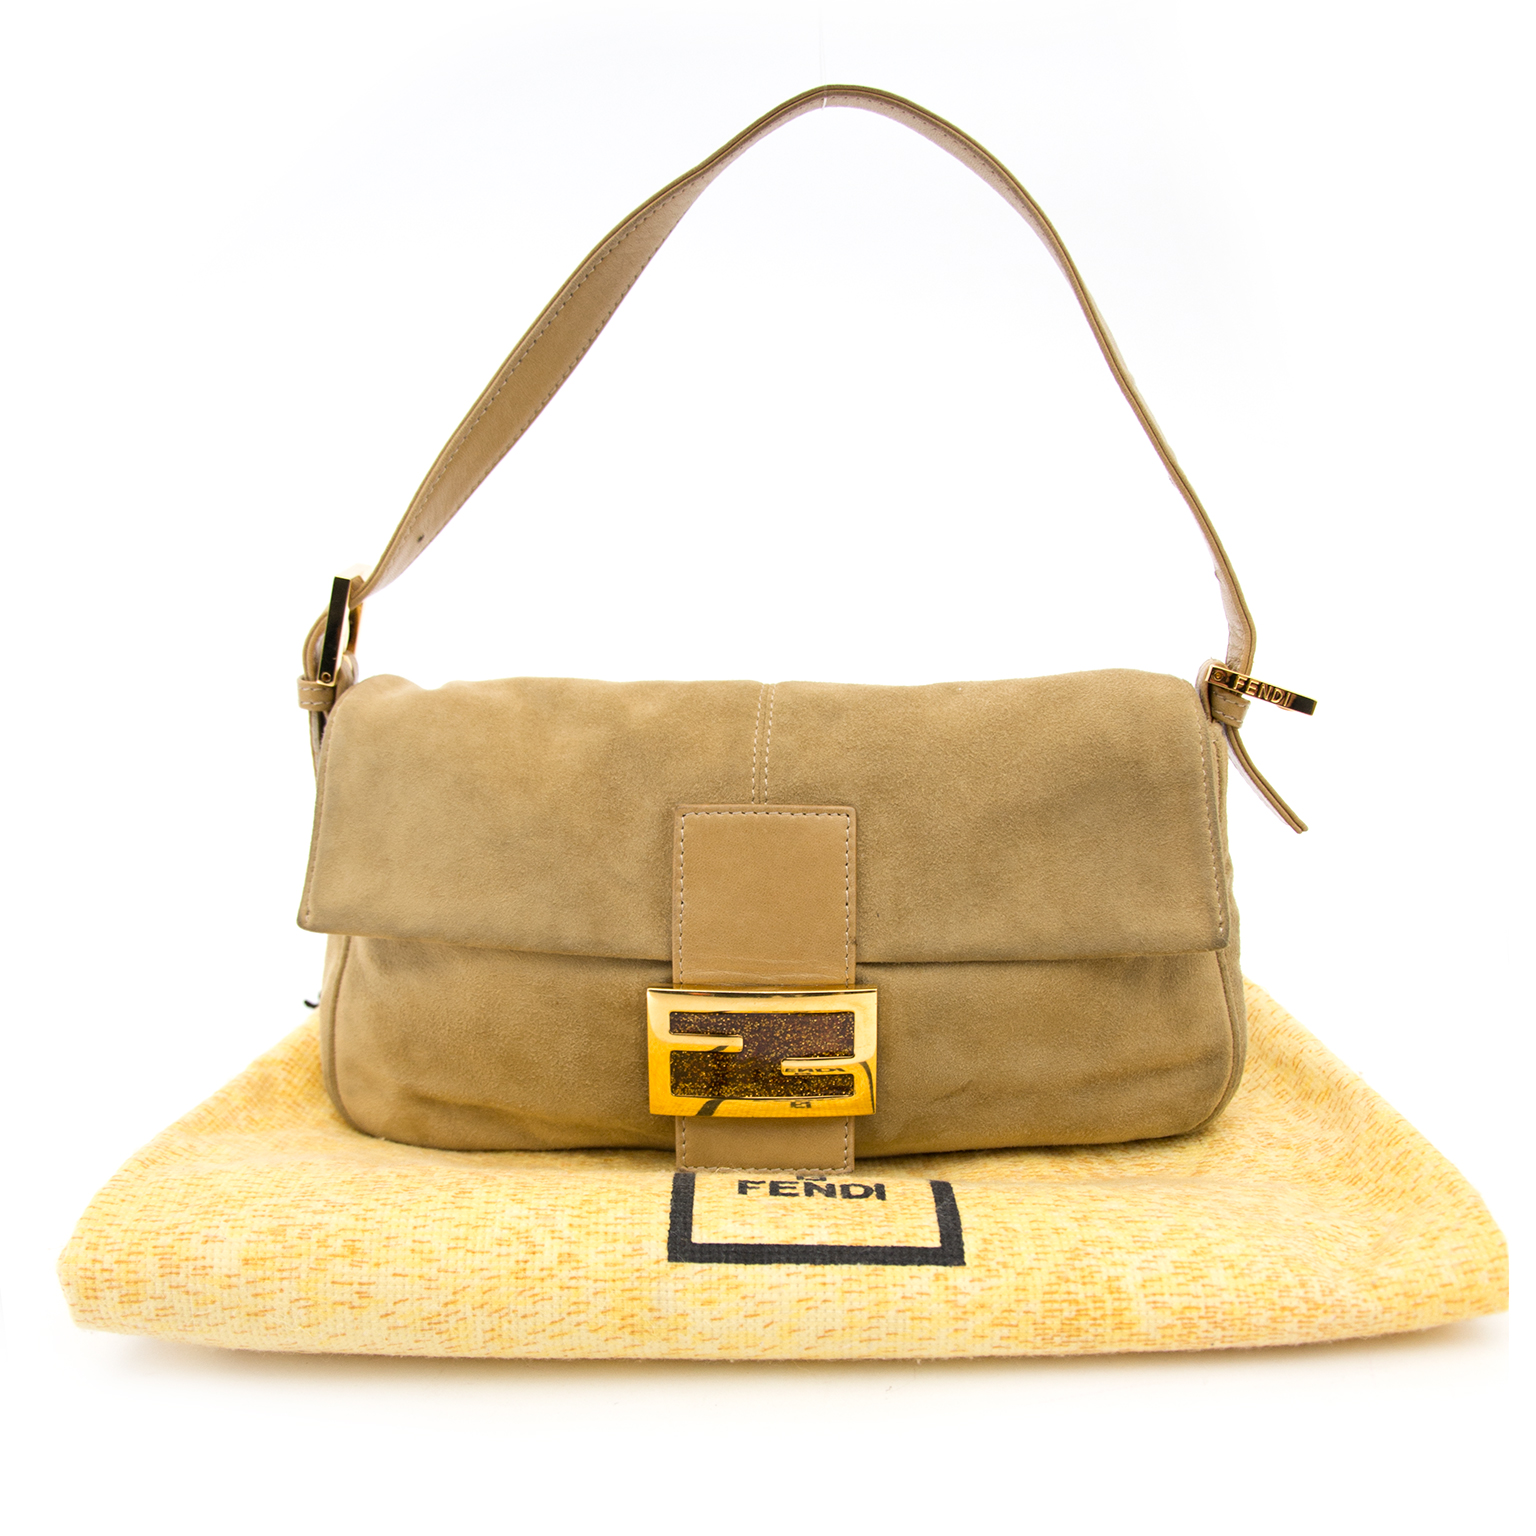 0bfb80ae2317 We buy and sell your secondhand Fendi Gold Suede Baguette Bag for the best  price Acheter secur en ligne votre sac Fendi Gold Suede Baguette pour le  meilleur ...